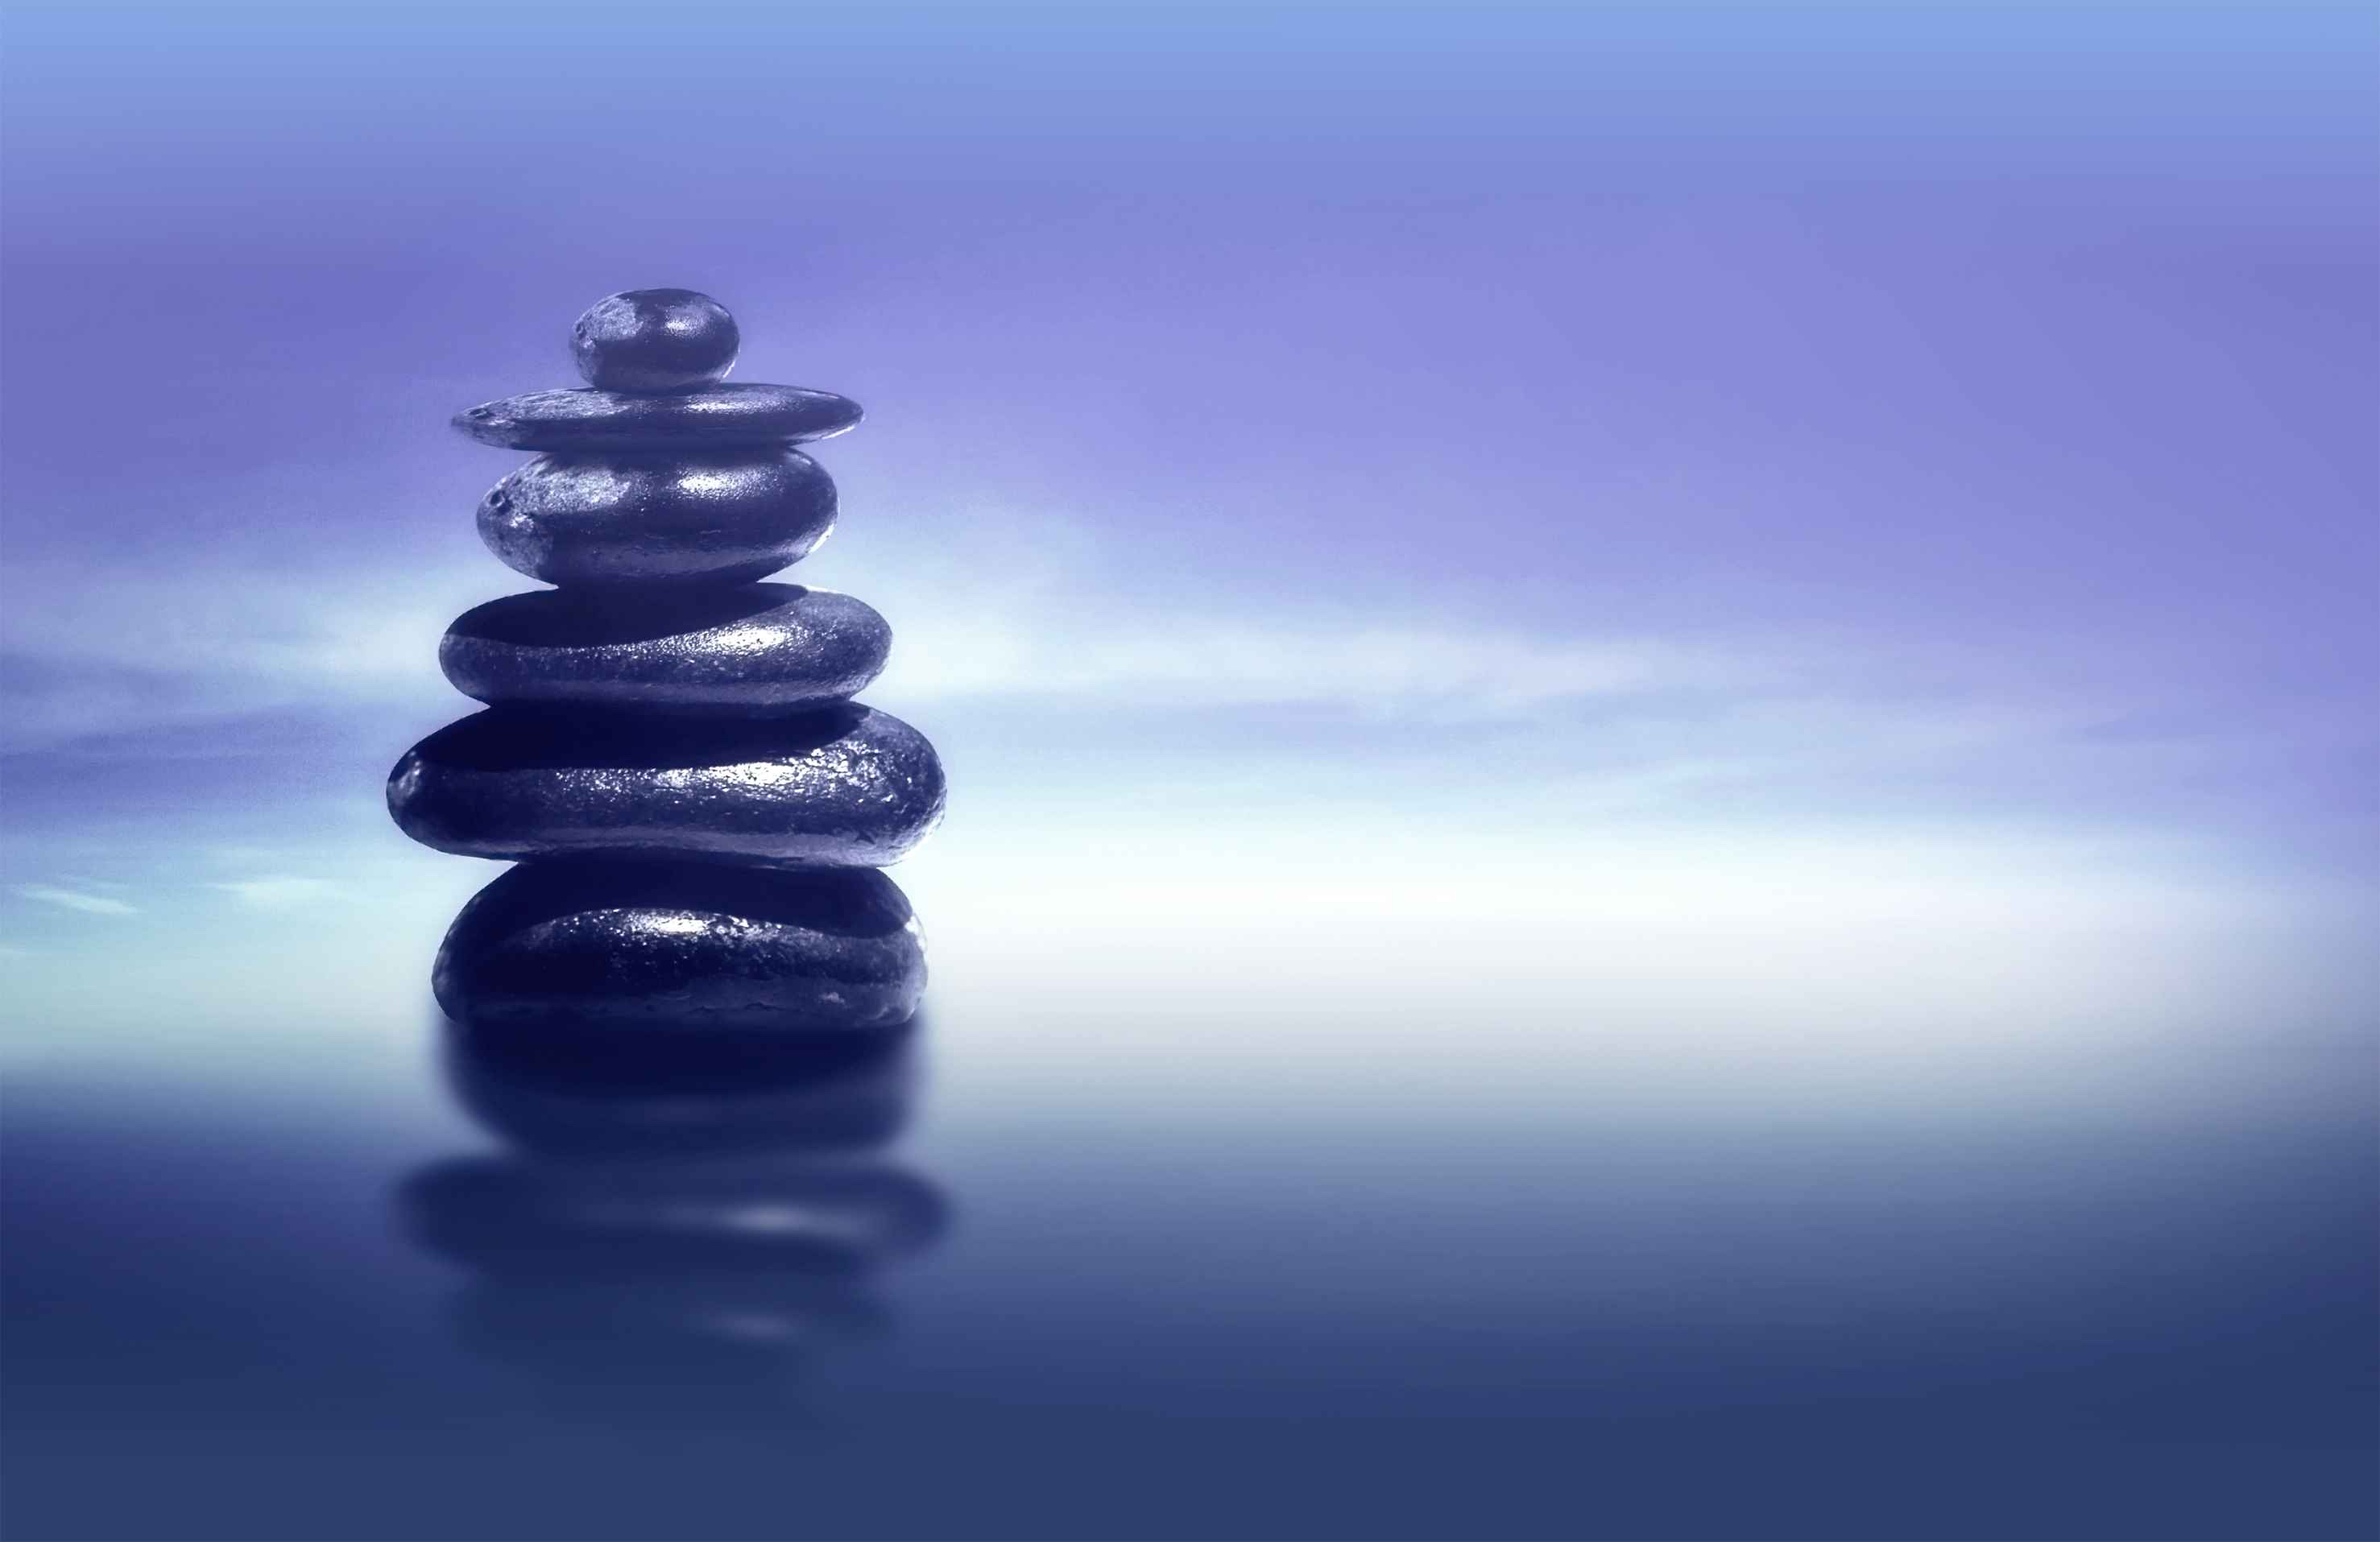 Zen stones - feng shui and harmony concept photo